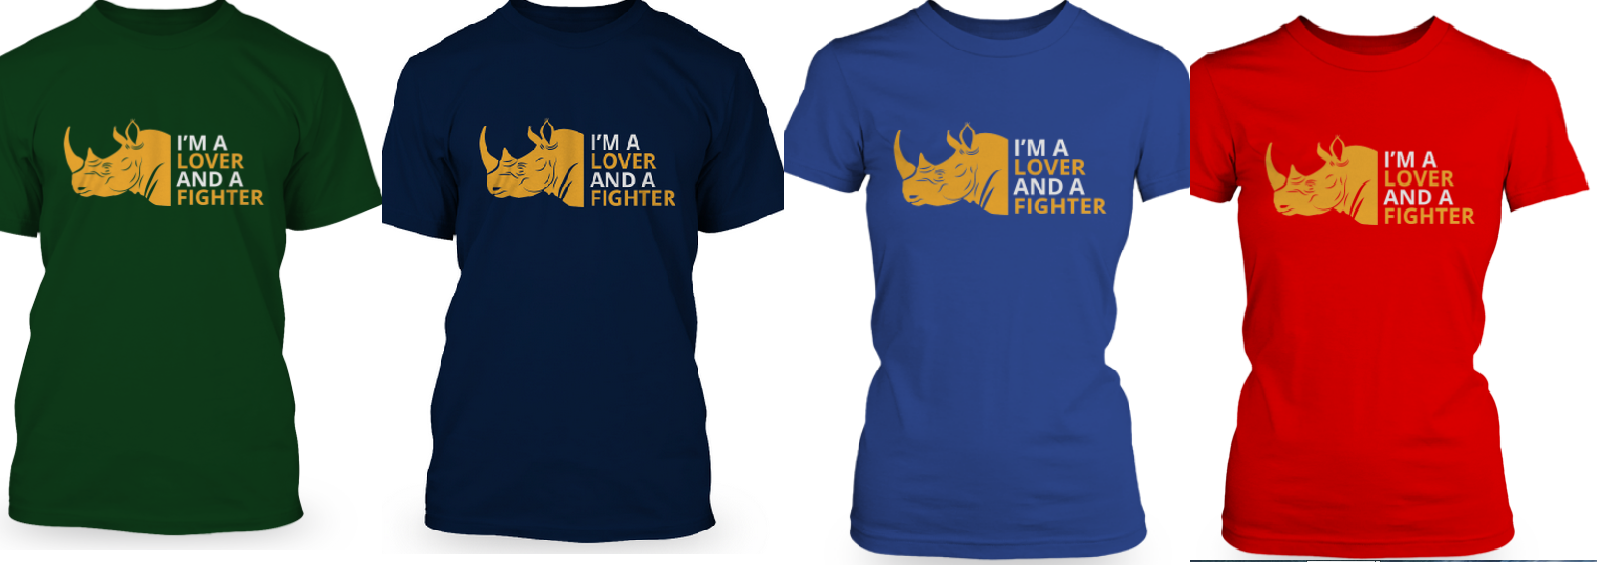 tshirts fight for rhinos. Black Bedroom Furniture Sets. Home Design Ideas